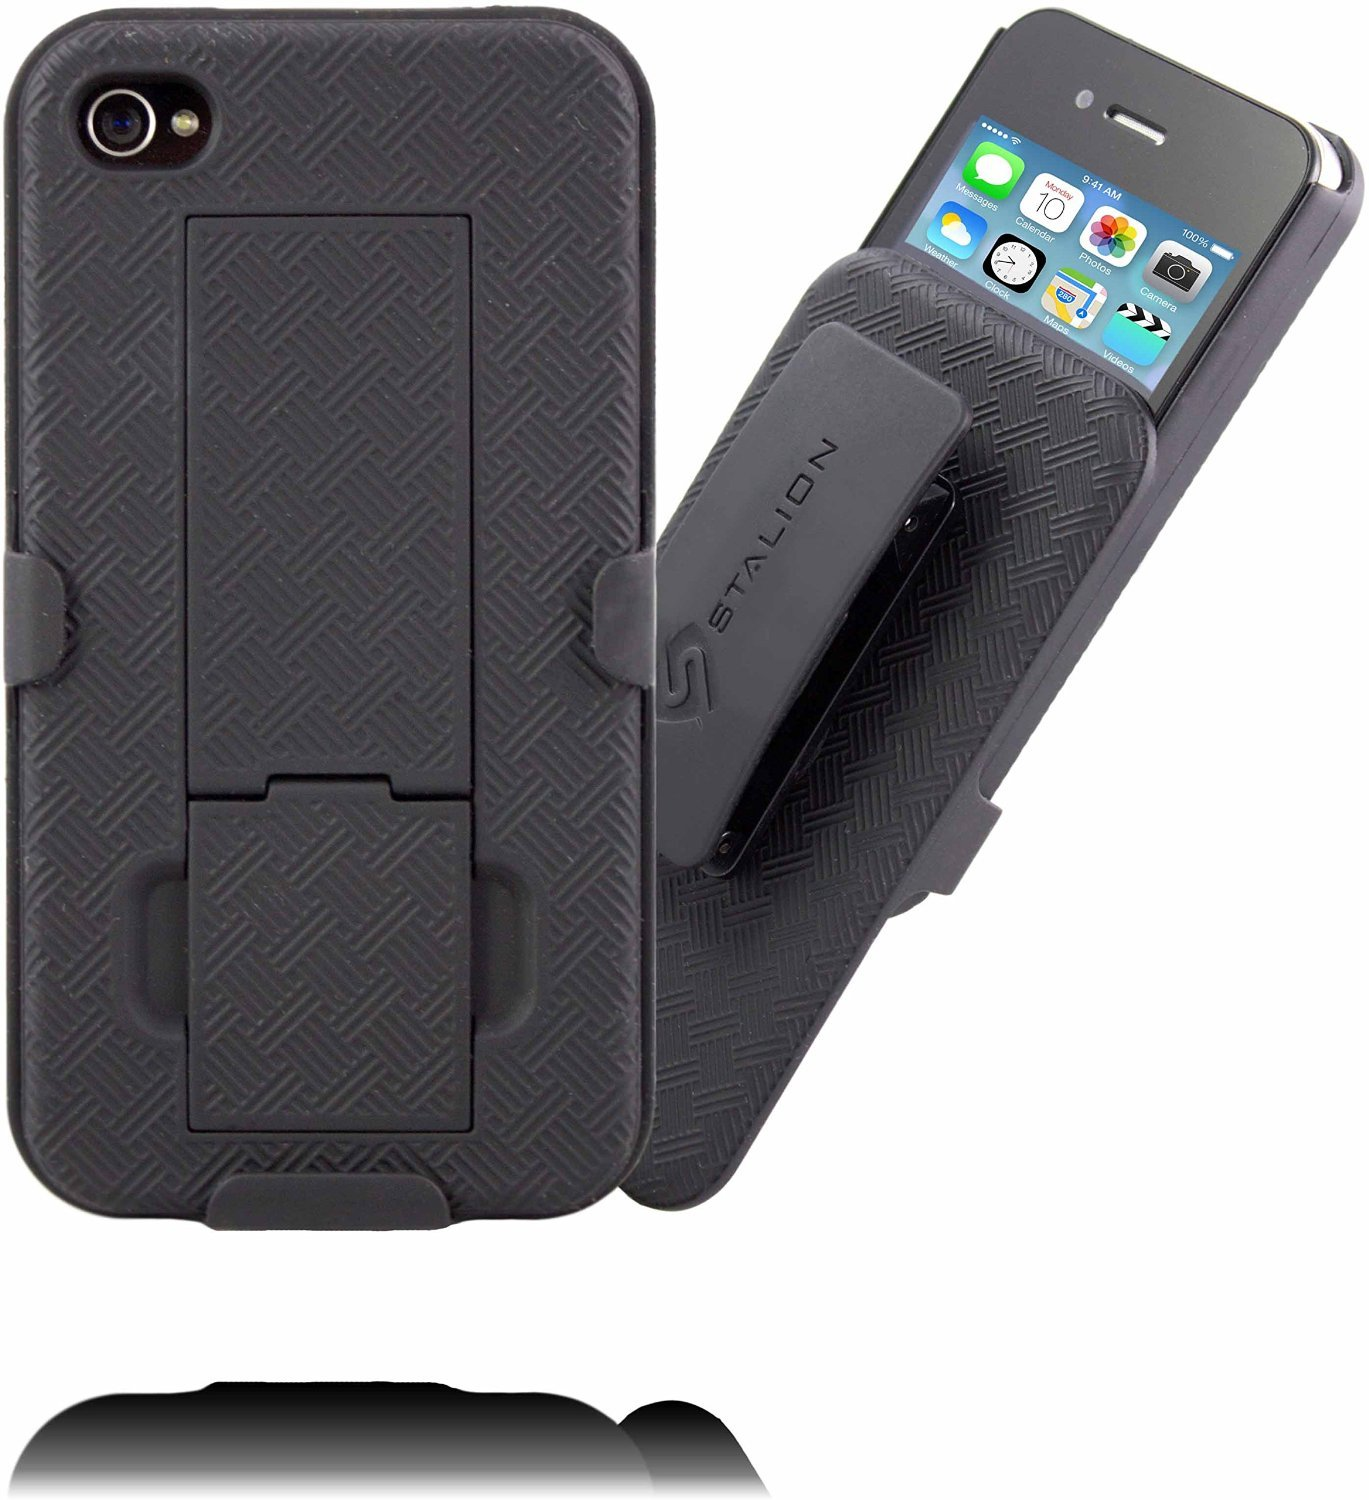 iphone 4 4s belt clip case stalion secure holster shell   kickstand combo  jet black Stallion Motorcycle Wild Stallions